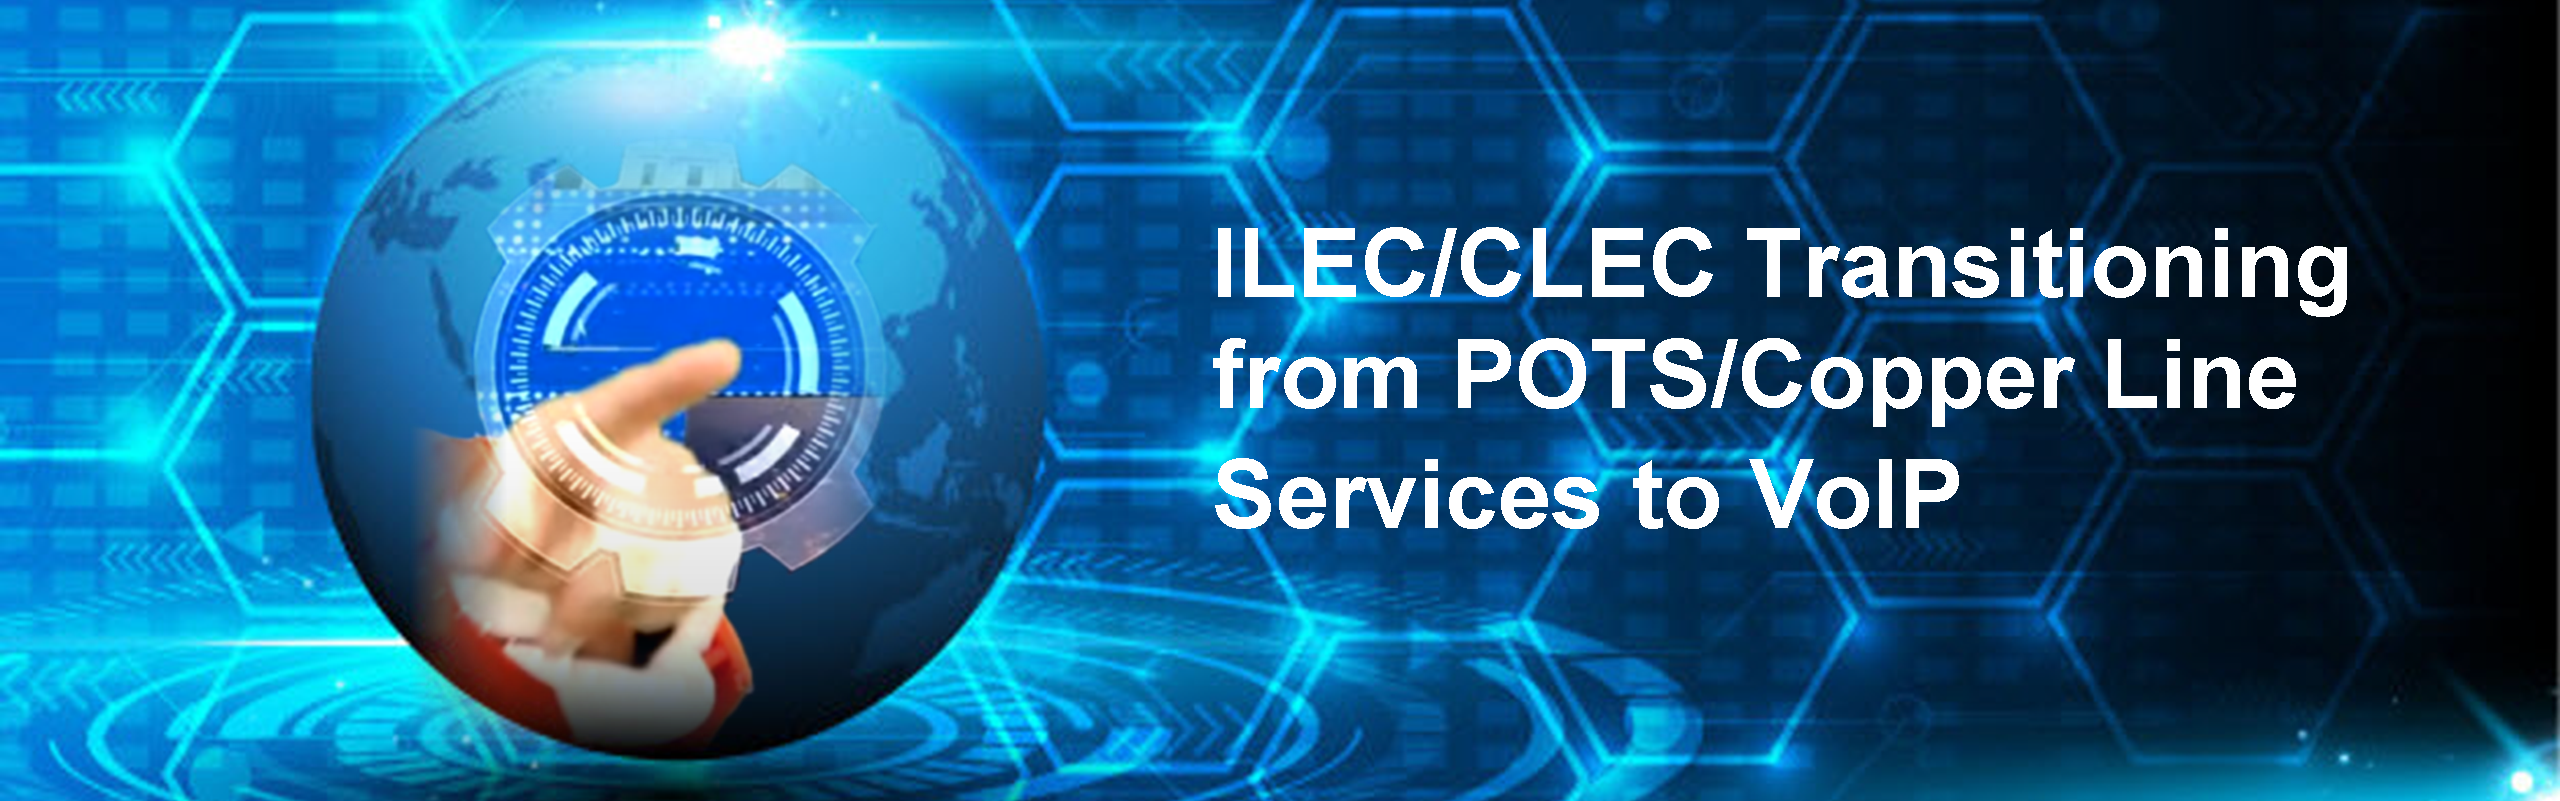 ILEC/CLEC Transitioning from POTS/Copper Line Services to VoIP